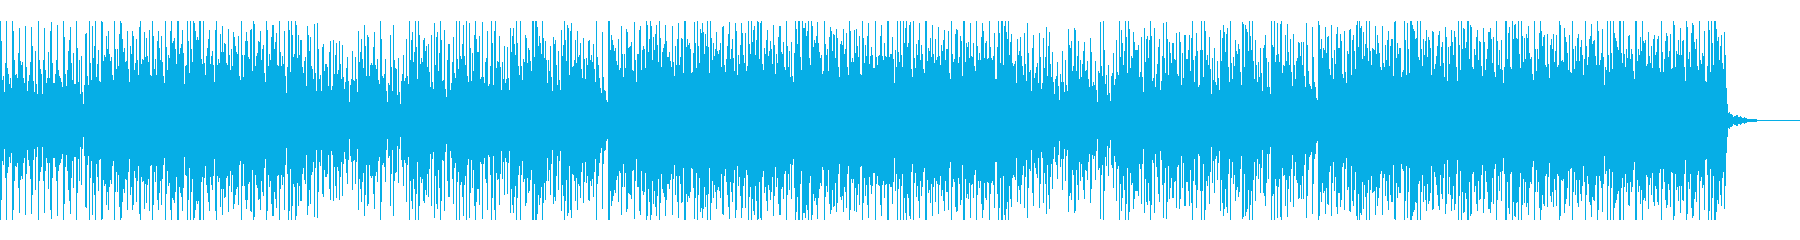 Cute and light acoustic pop's reproduced waveform